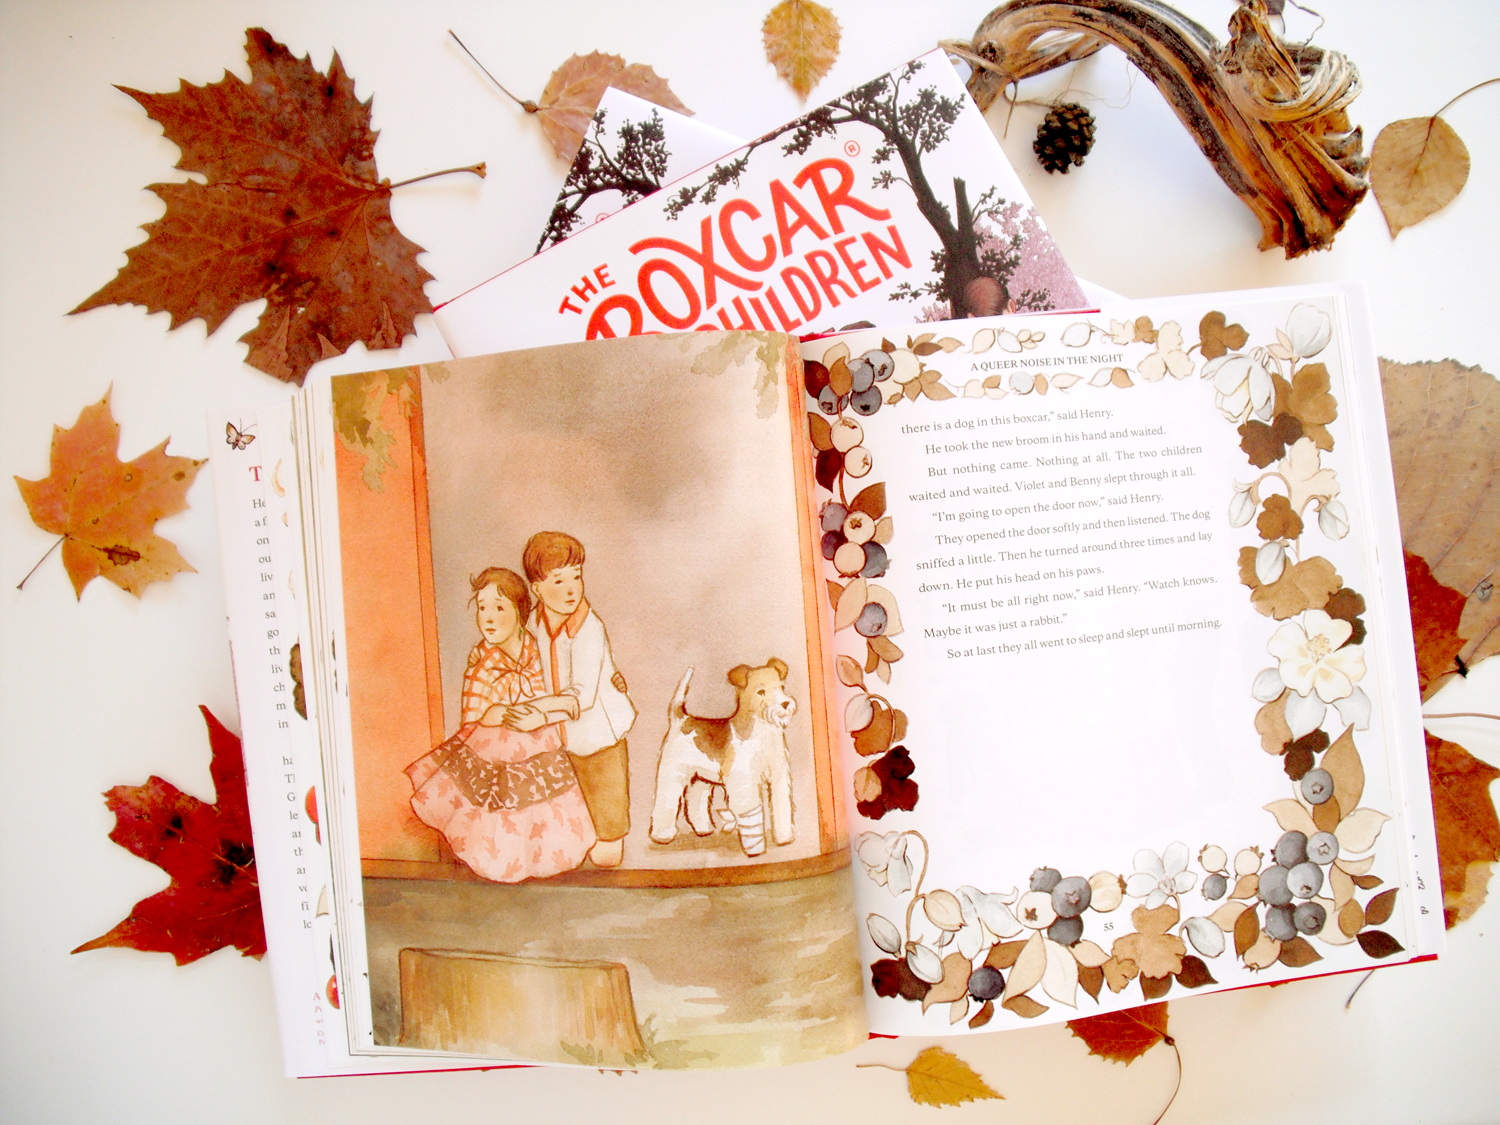 the-boxcar-children-book-release5.png